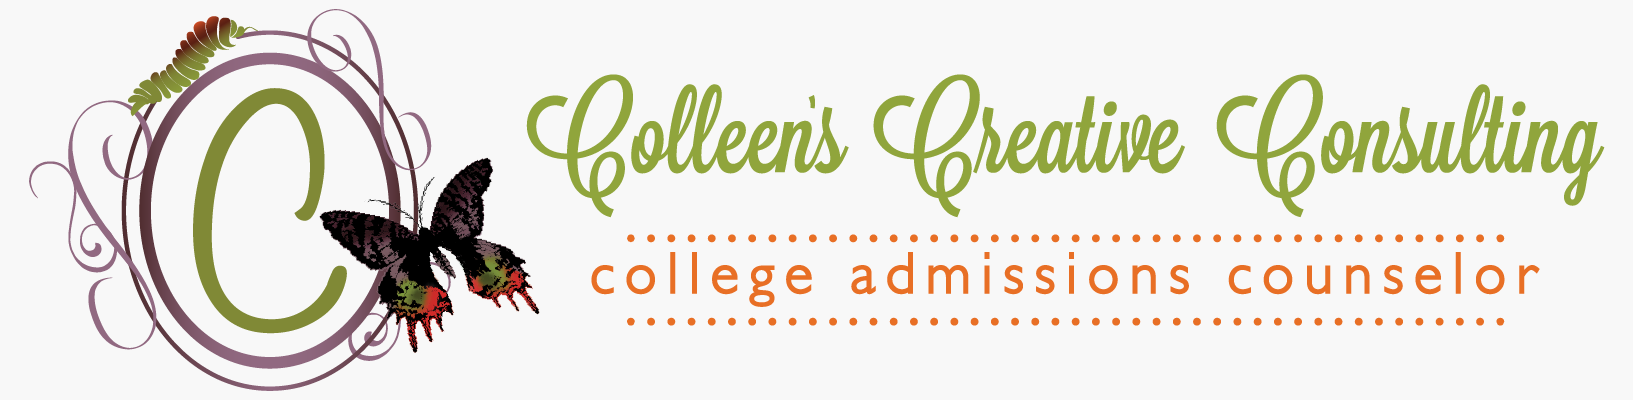 College Admissions Counselor